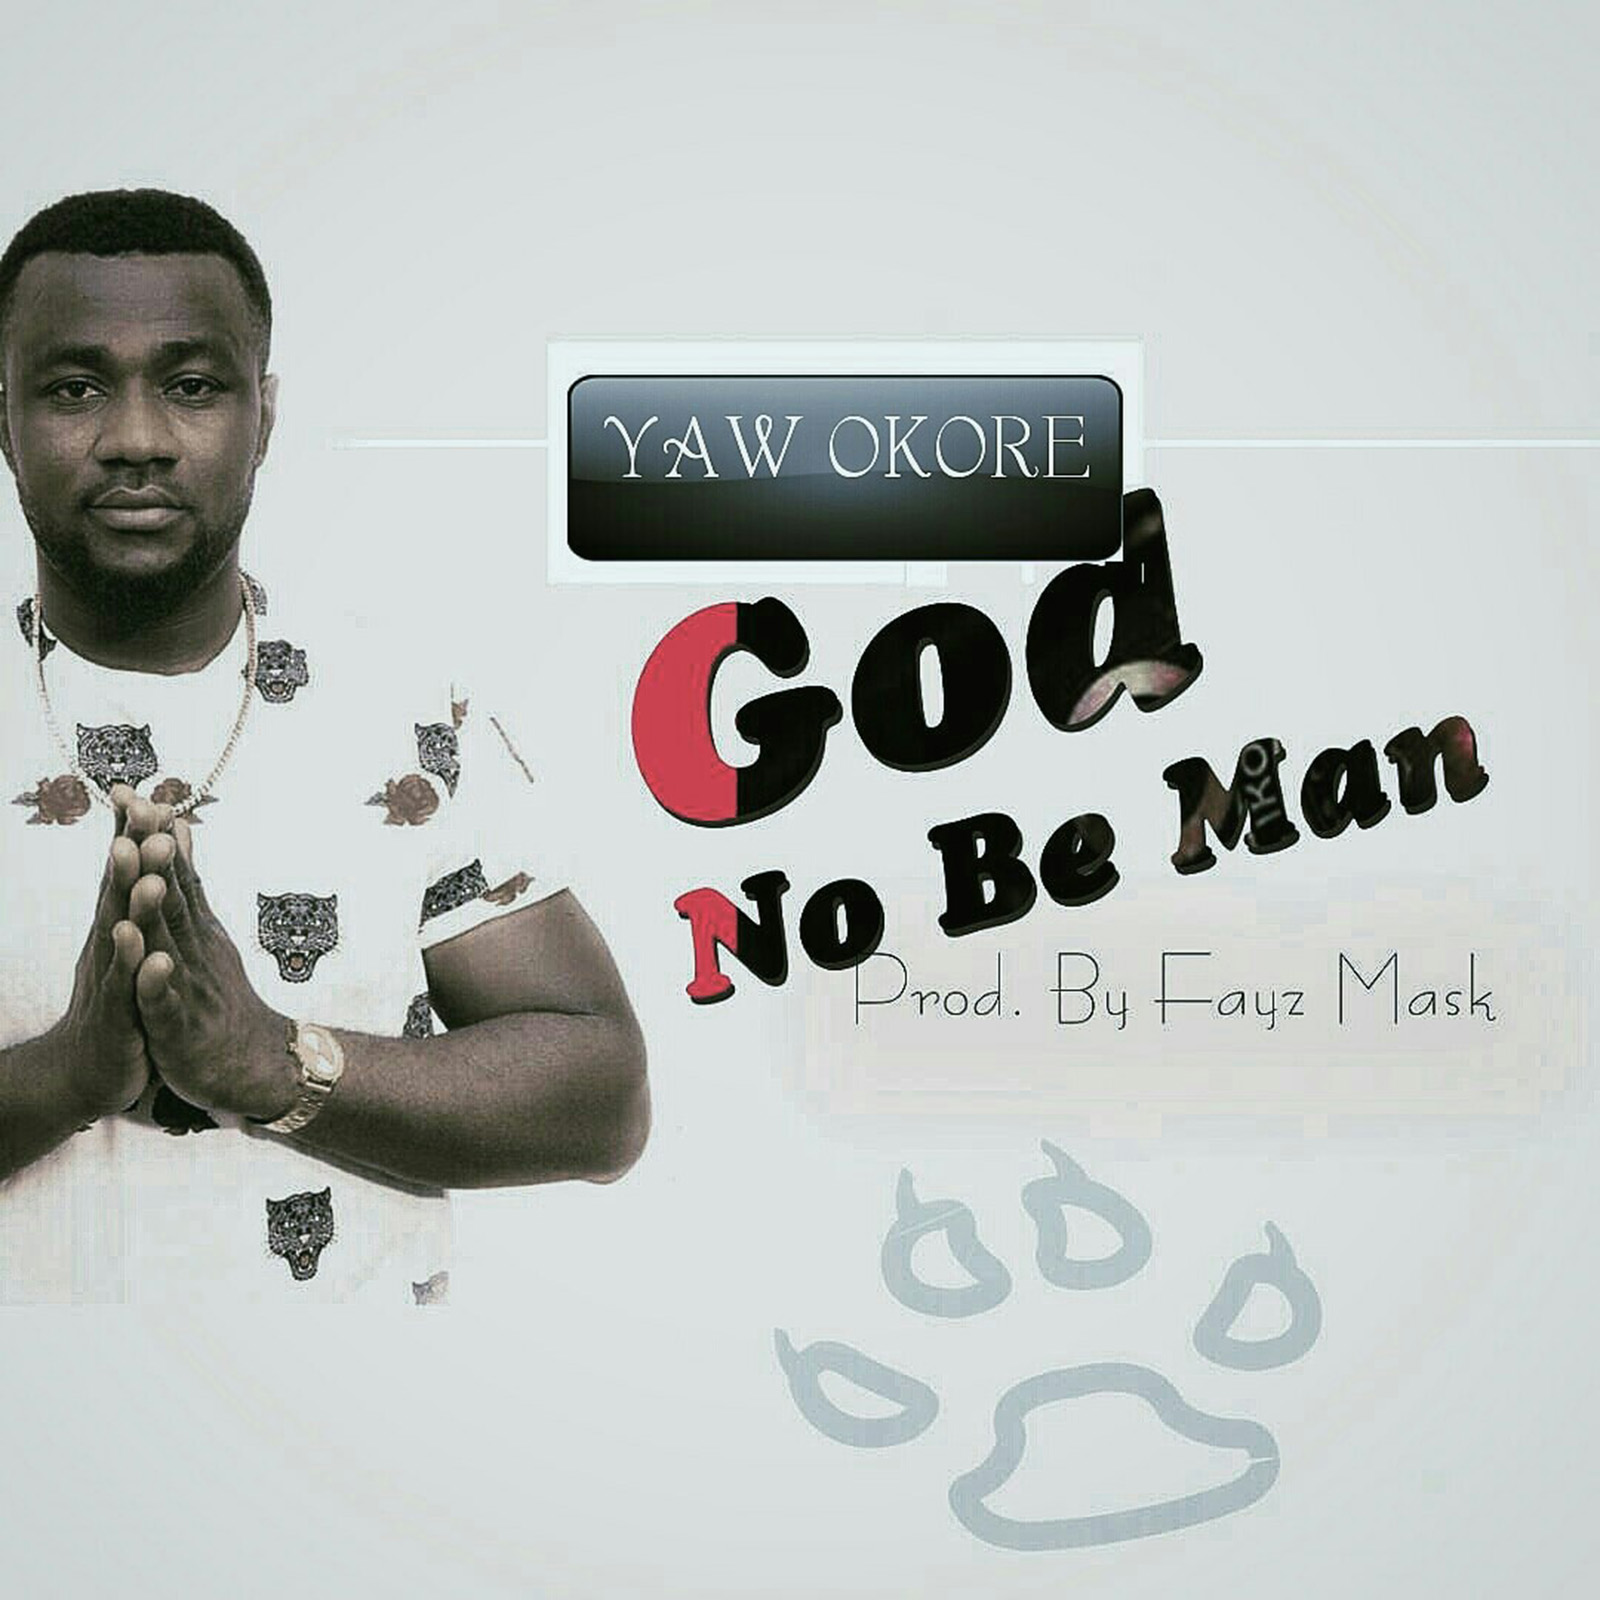 God Nor Be Man by Yaw Okore